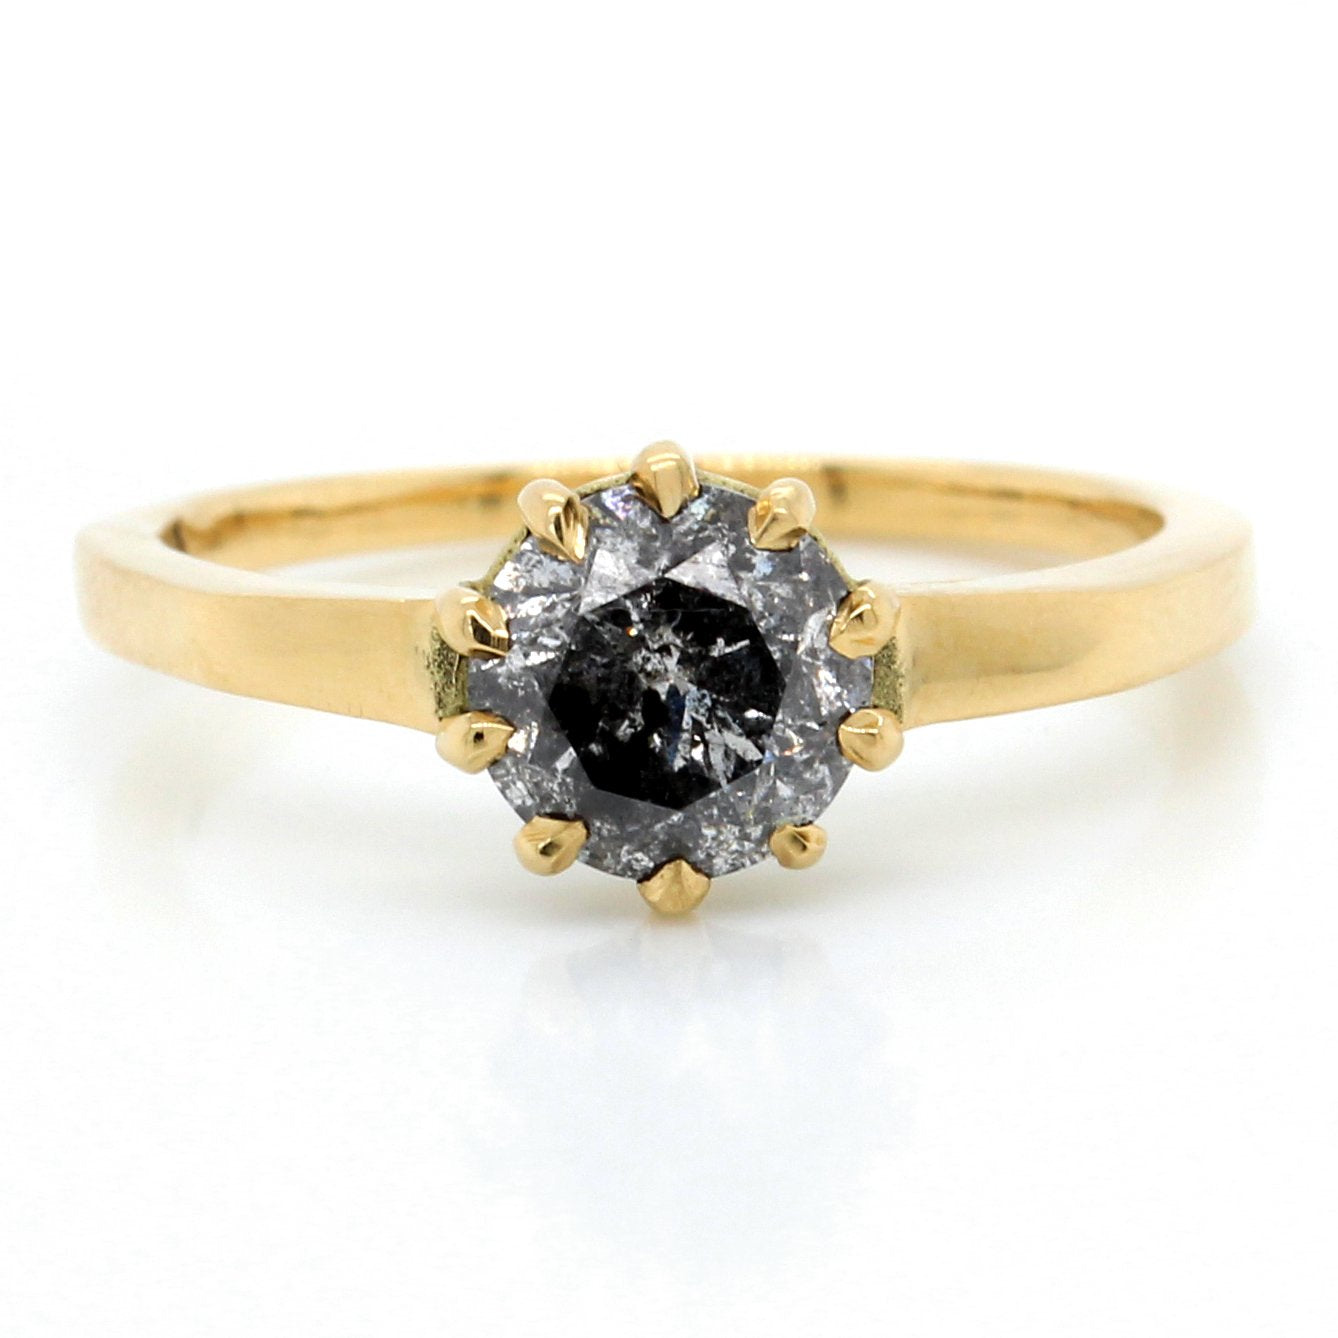 18K Yellow Gold Dark Round Brilliant Diamond Ring